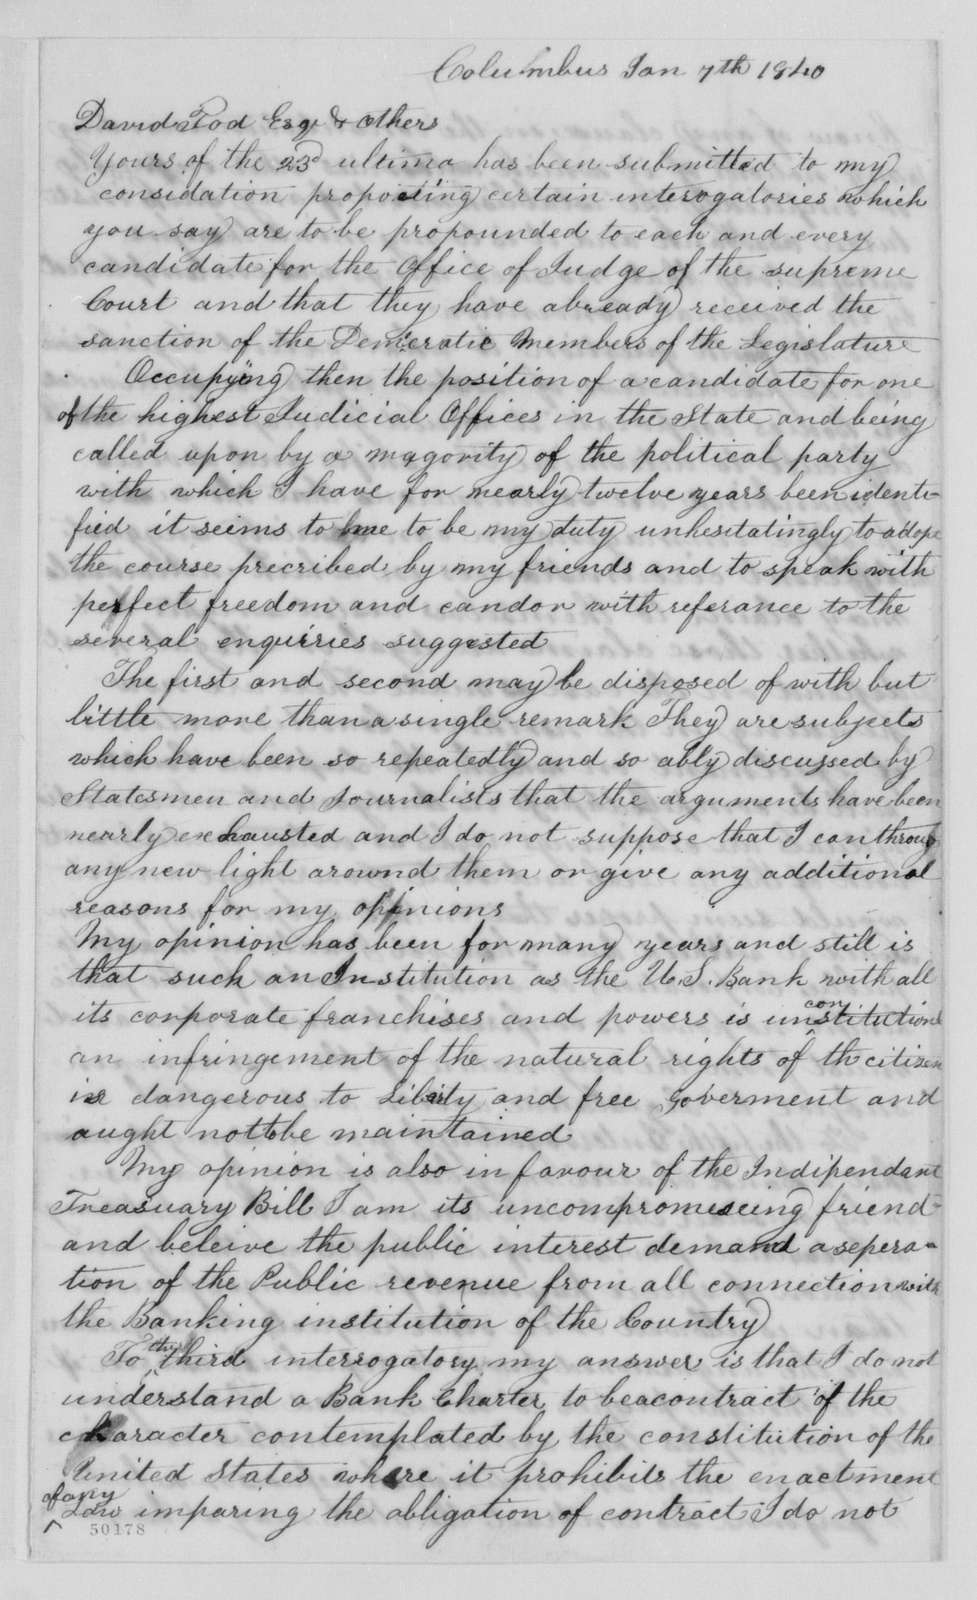 Edwin McMasters Stanton Papers: Correspondence, 1831-1870; 1831, July 19-1862, Jan. 13